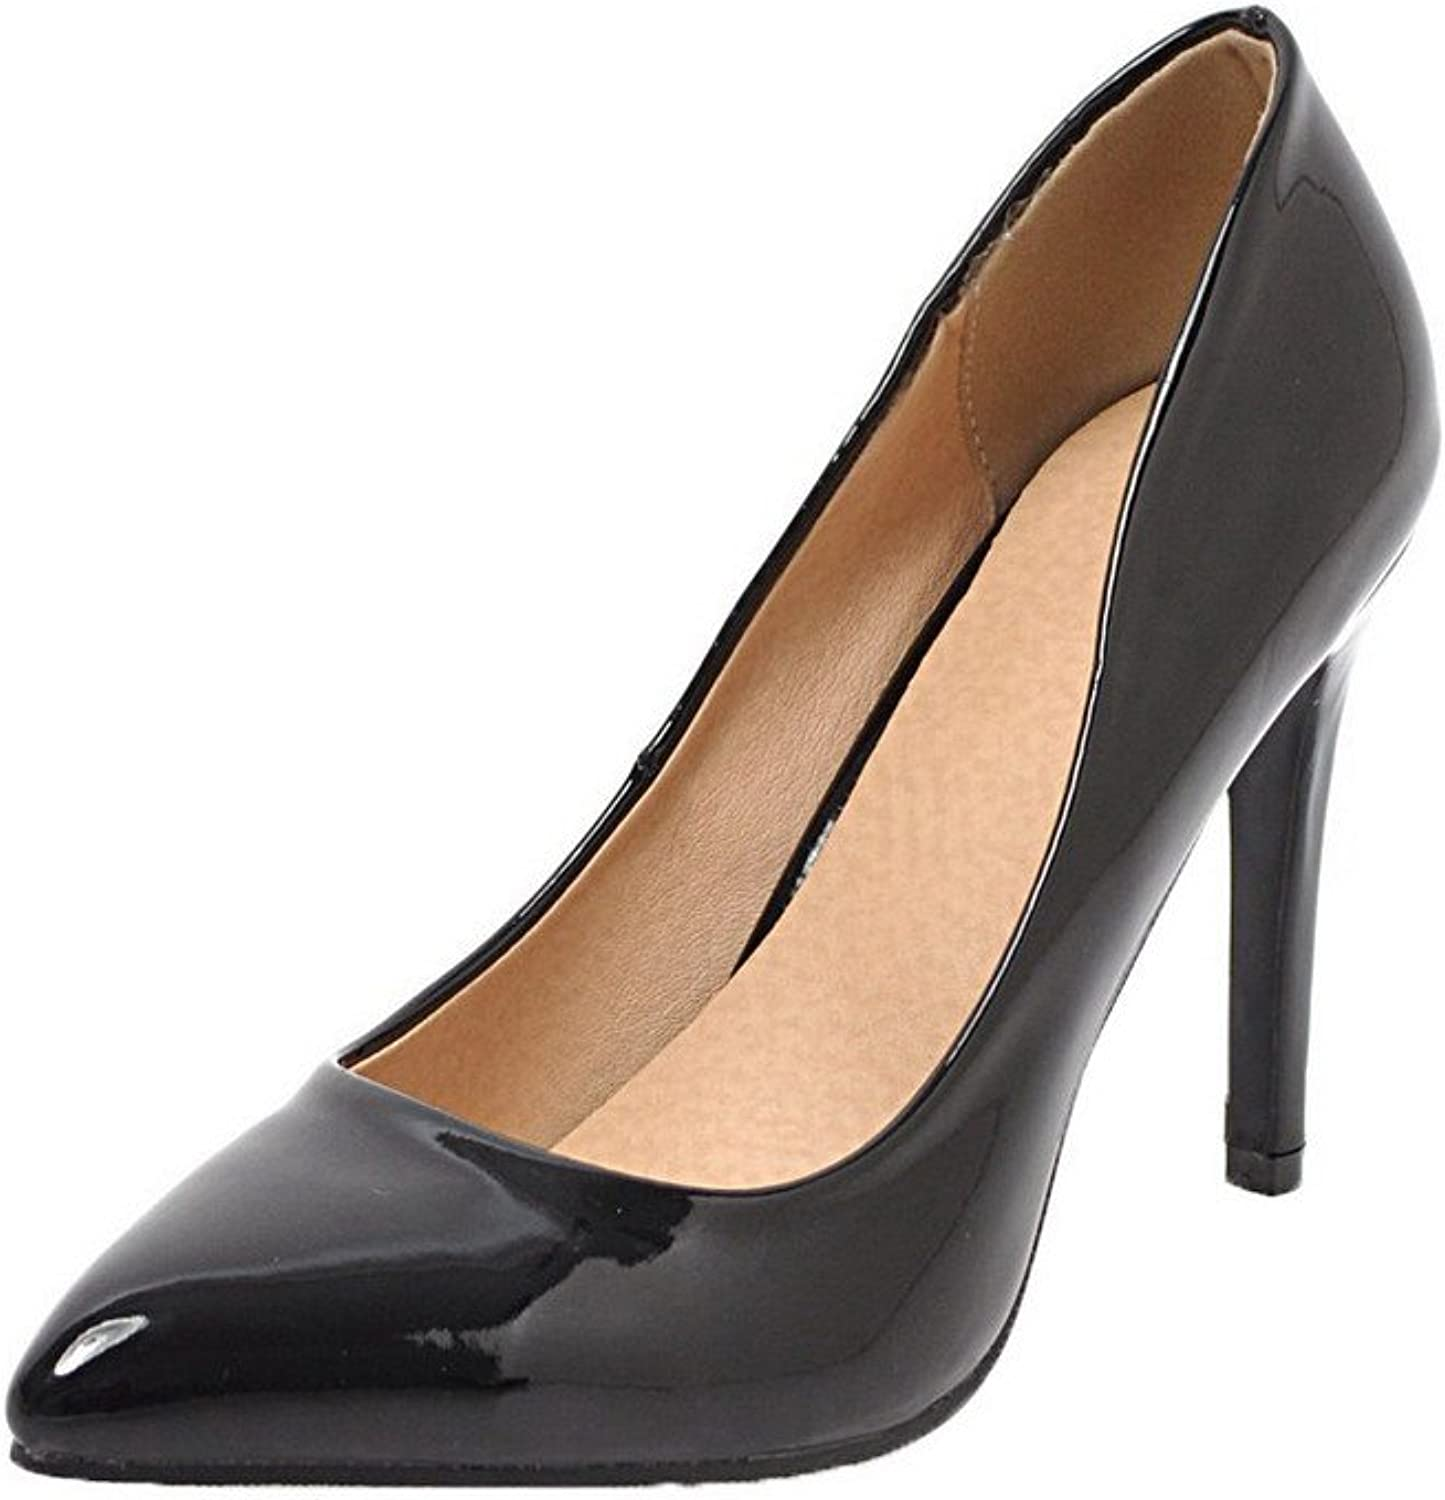 WeenFashion Women's Pull-On Closed-Toe High-Heels Patent Leather Pumps-shoes